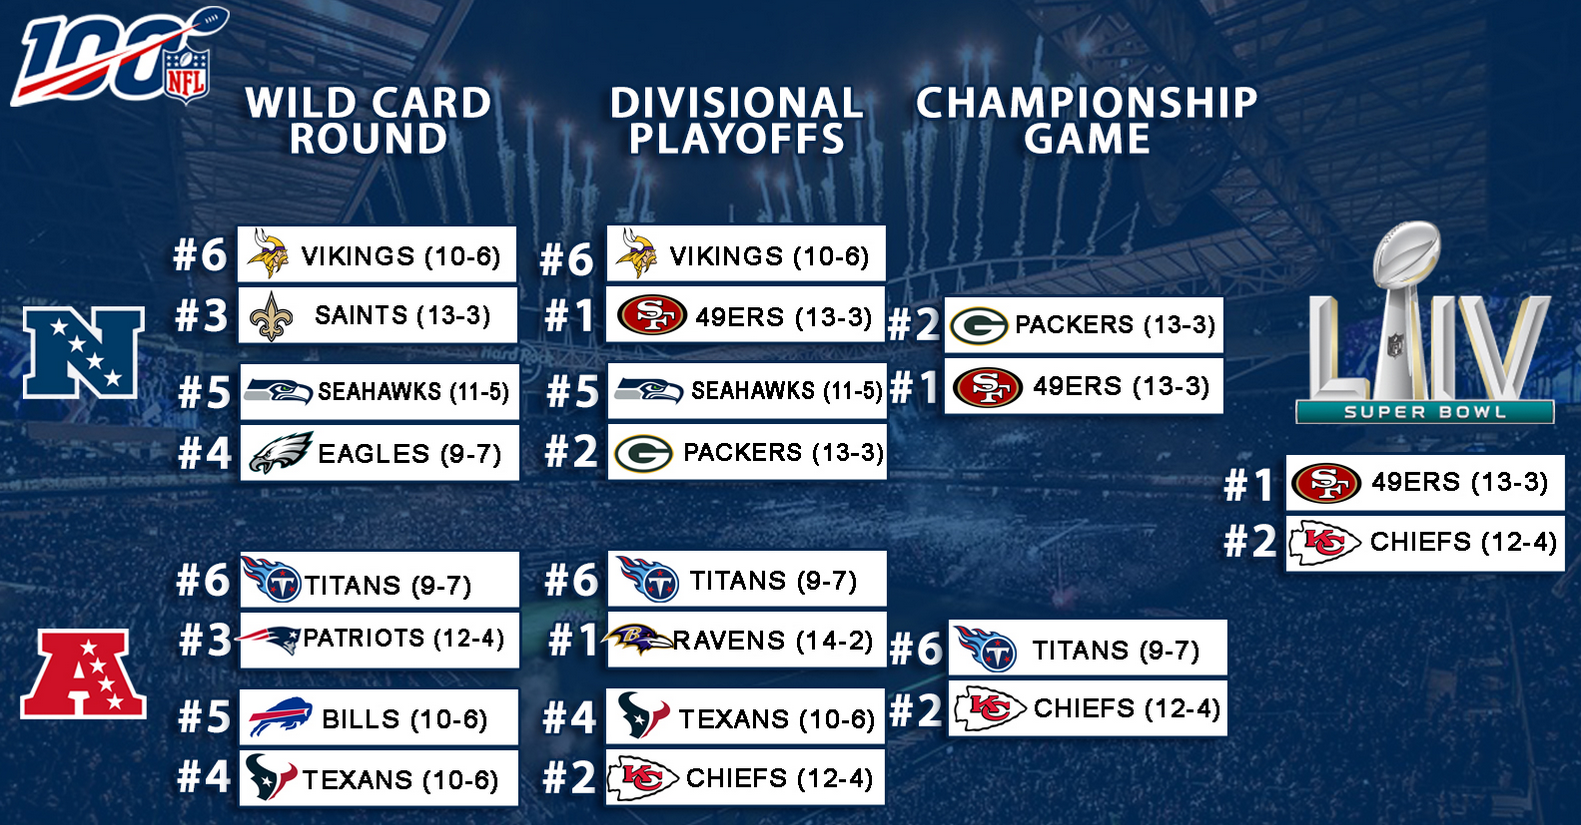 Road to Super Bowl